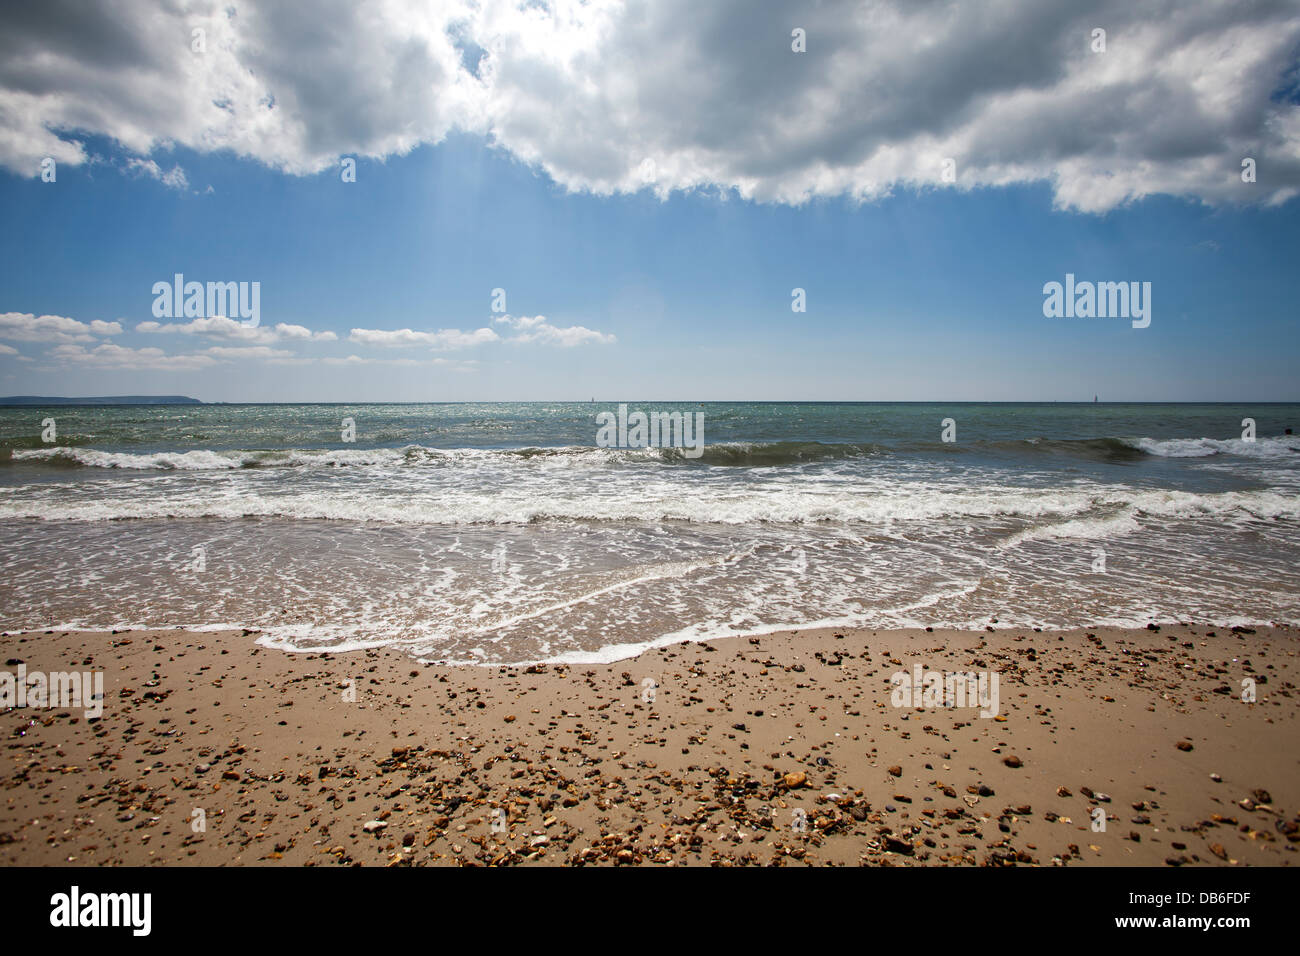 an empty strand of beach with gentle surf under sunlit clouds - Stock Image